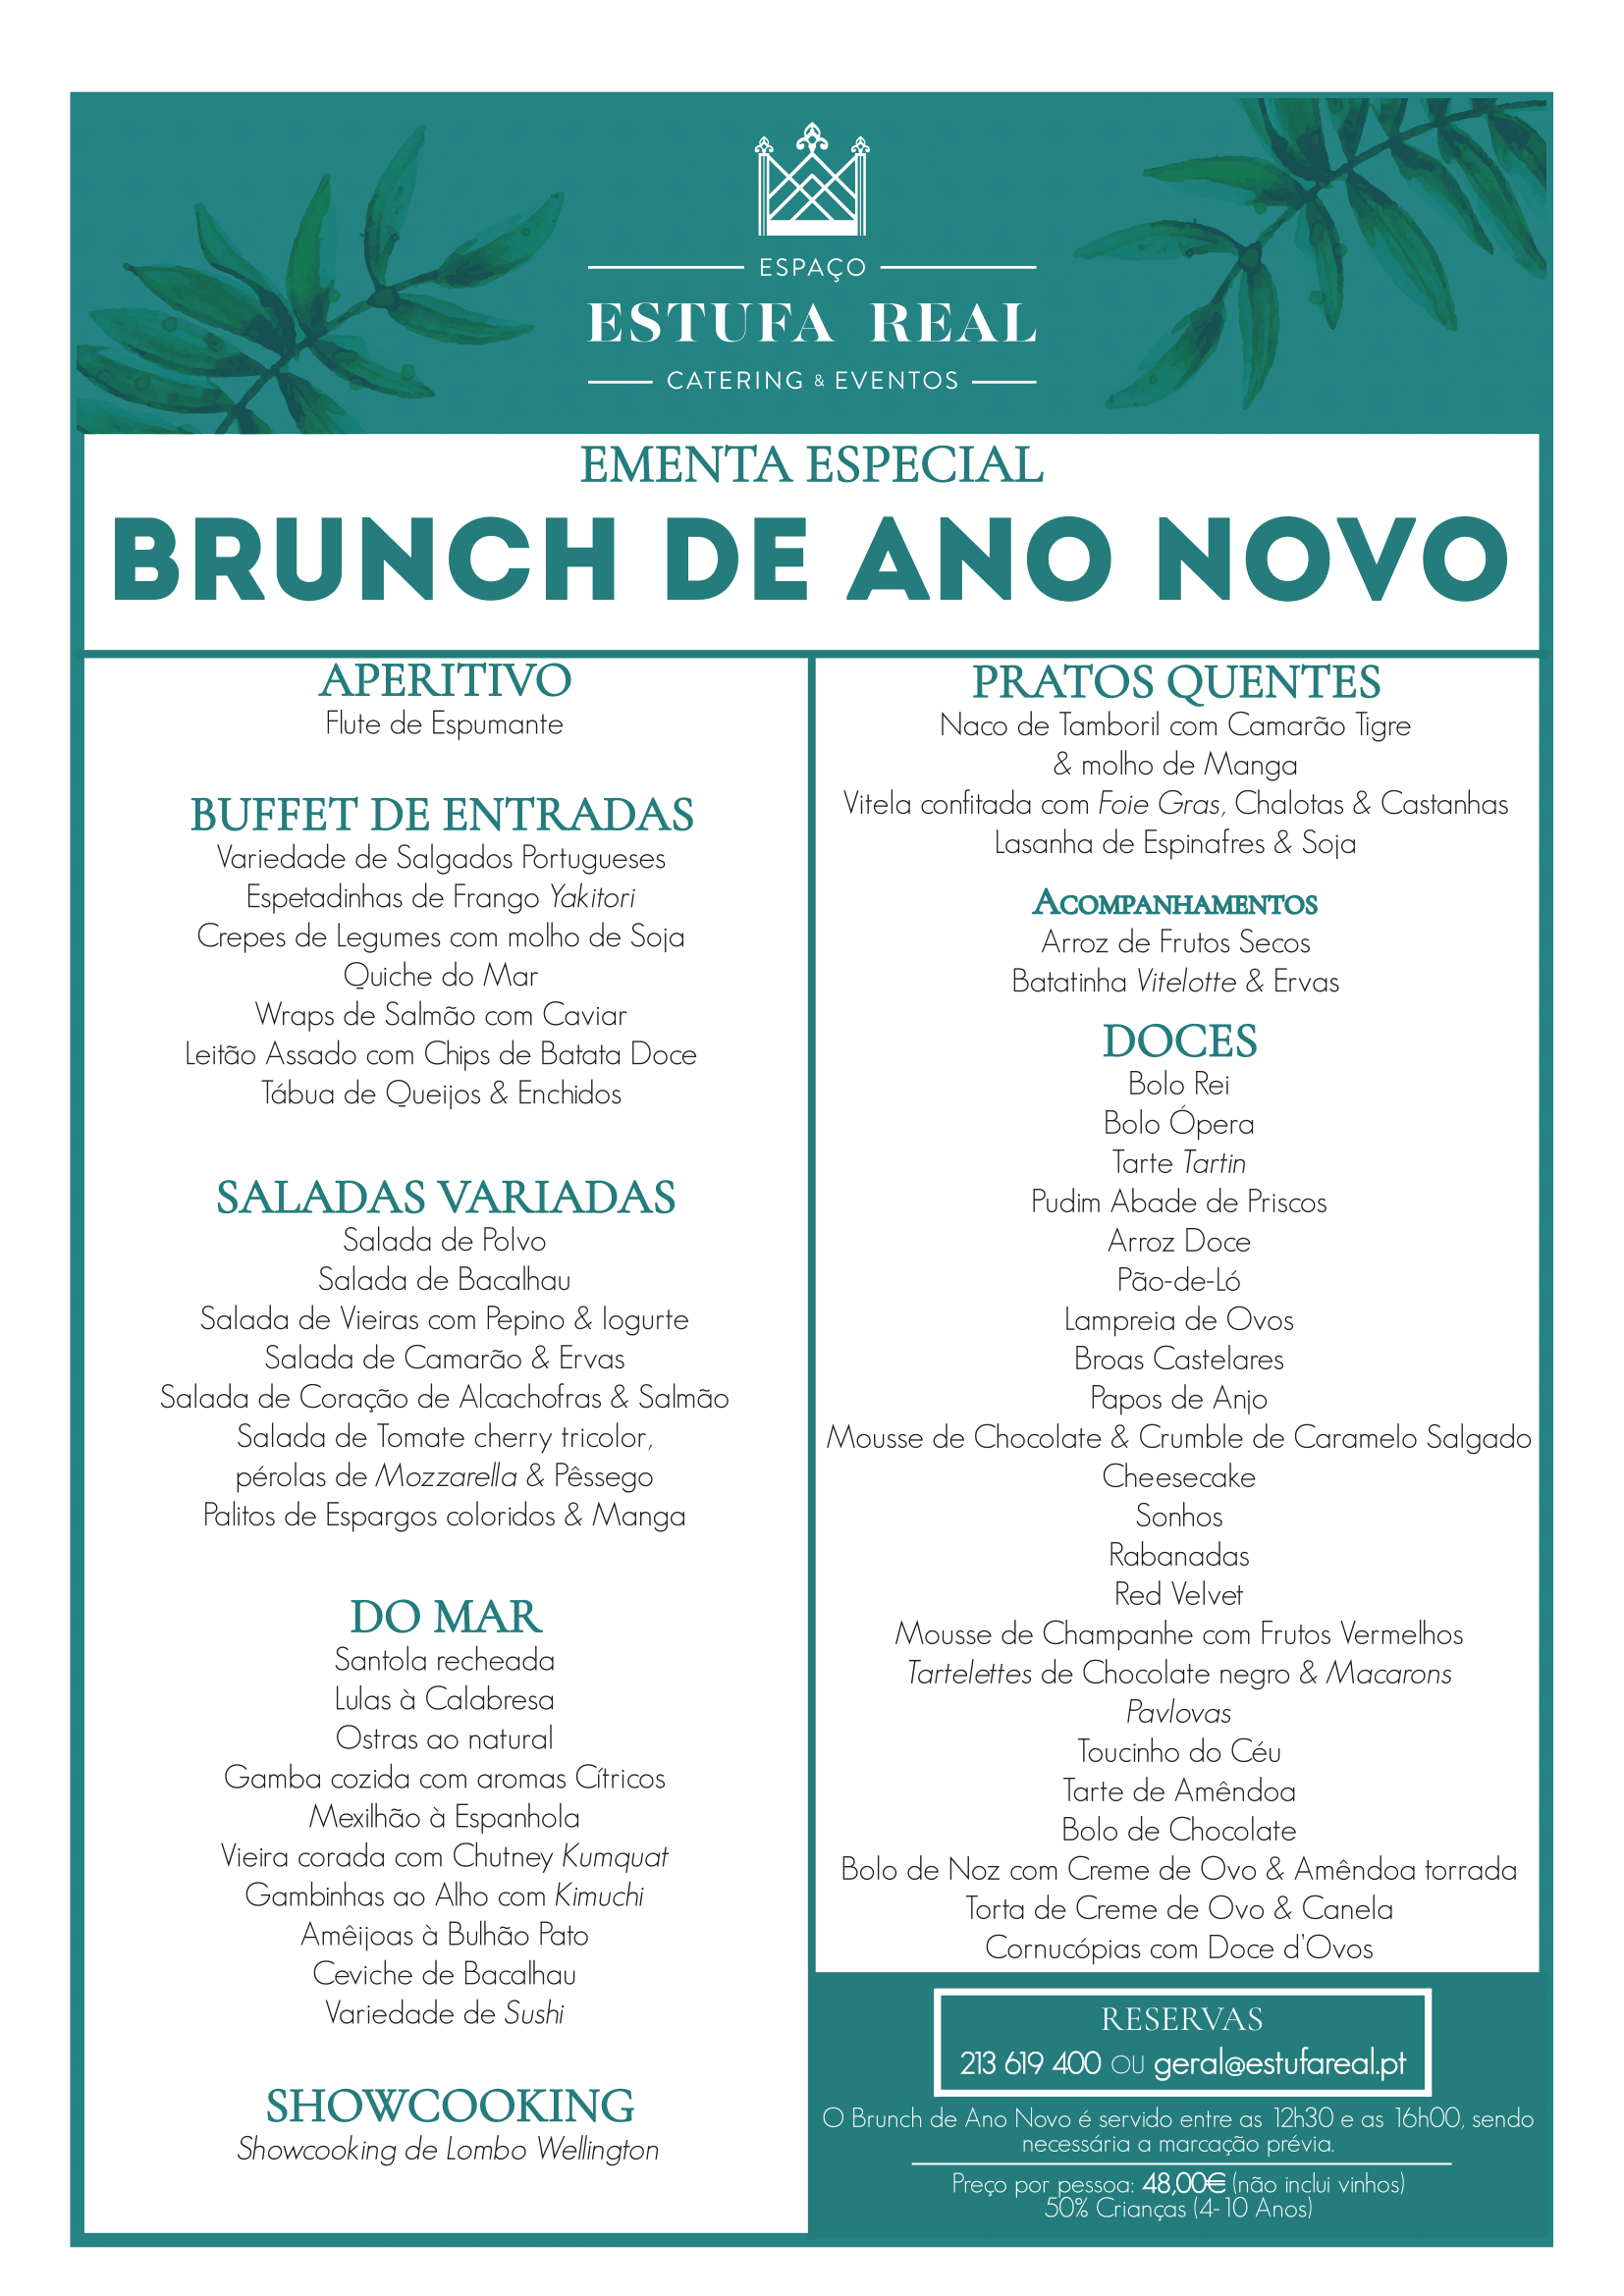 Estufa Real_Brunch de Ano Novo_2019-1